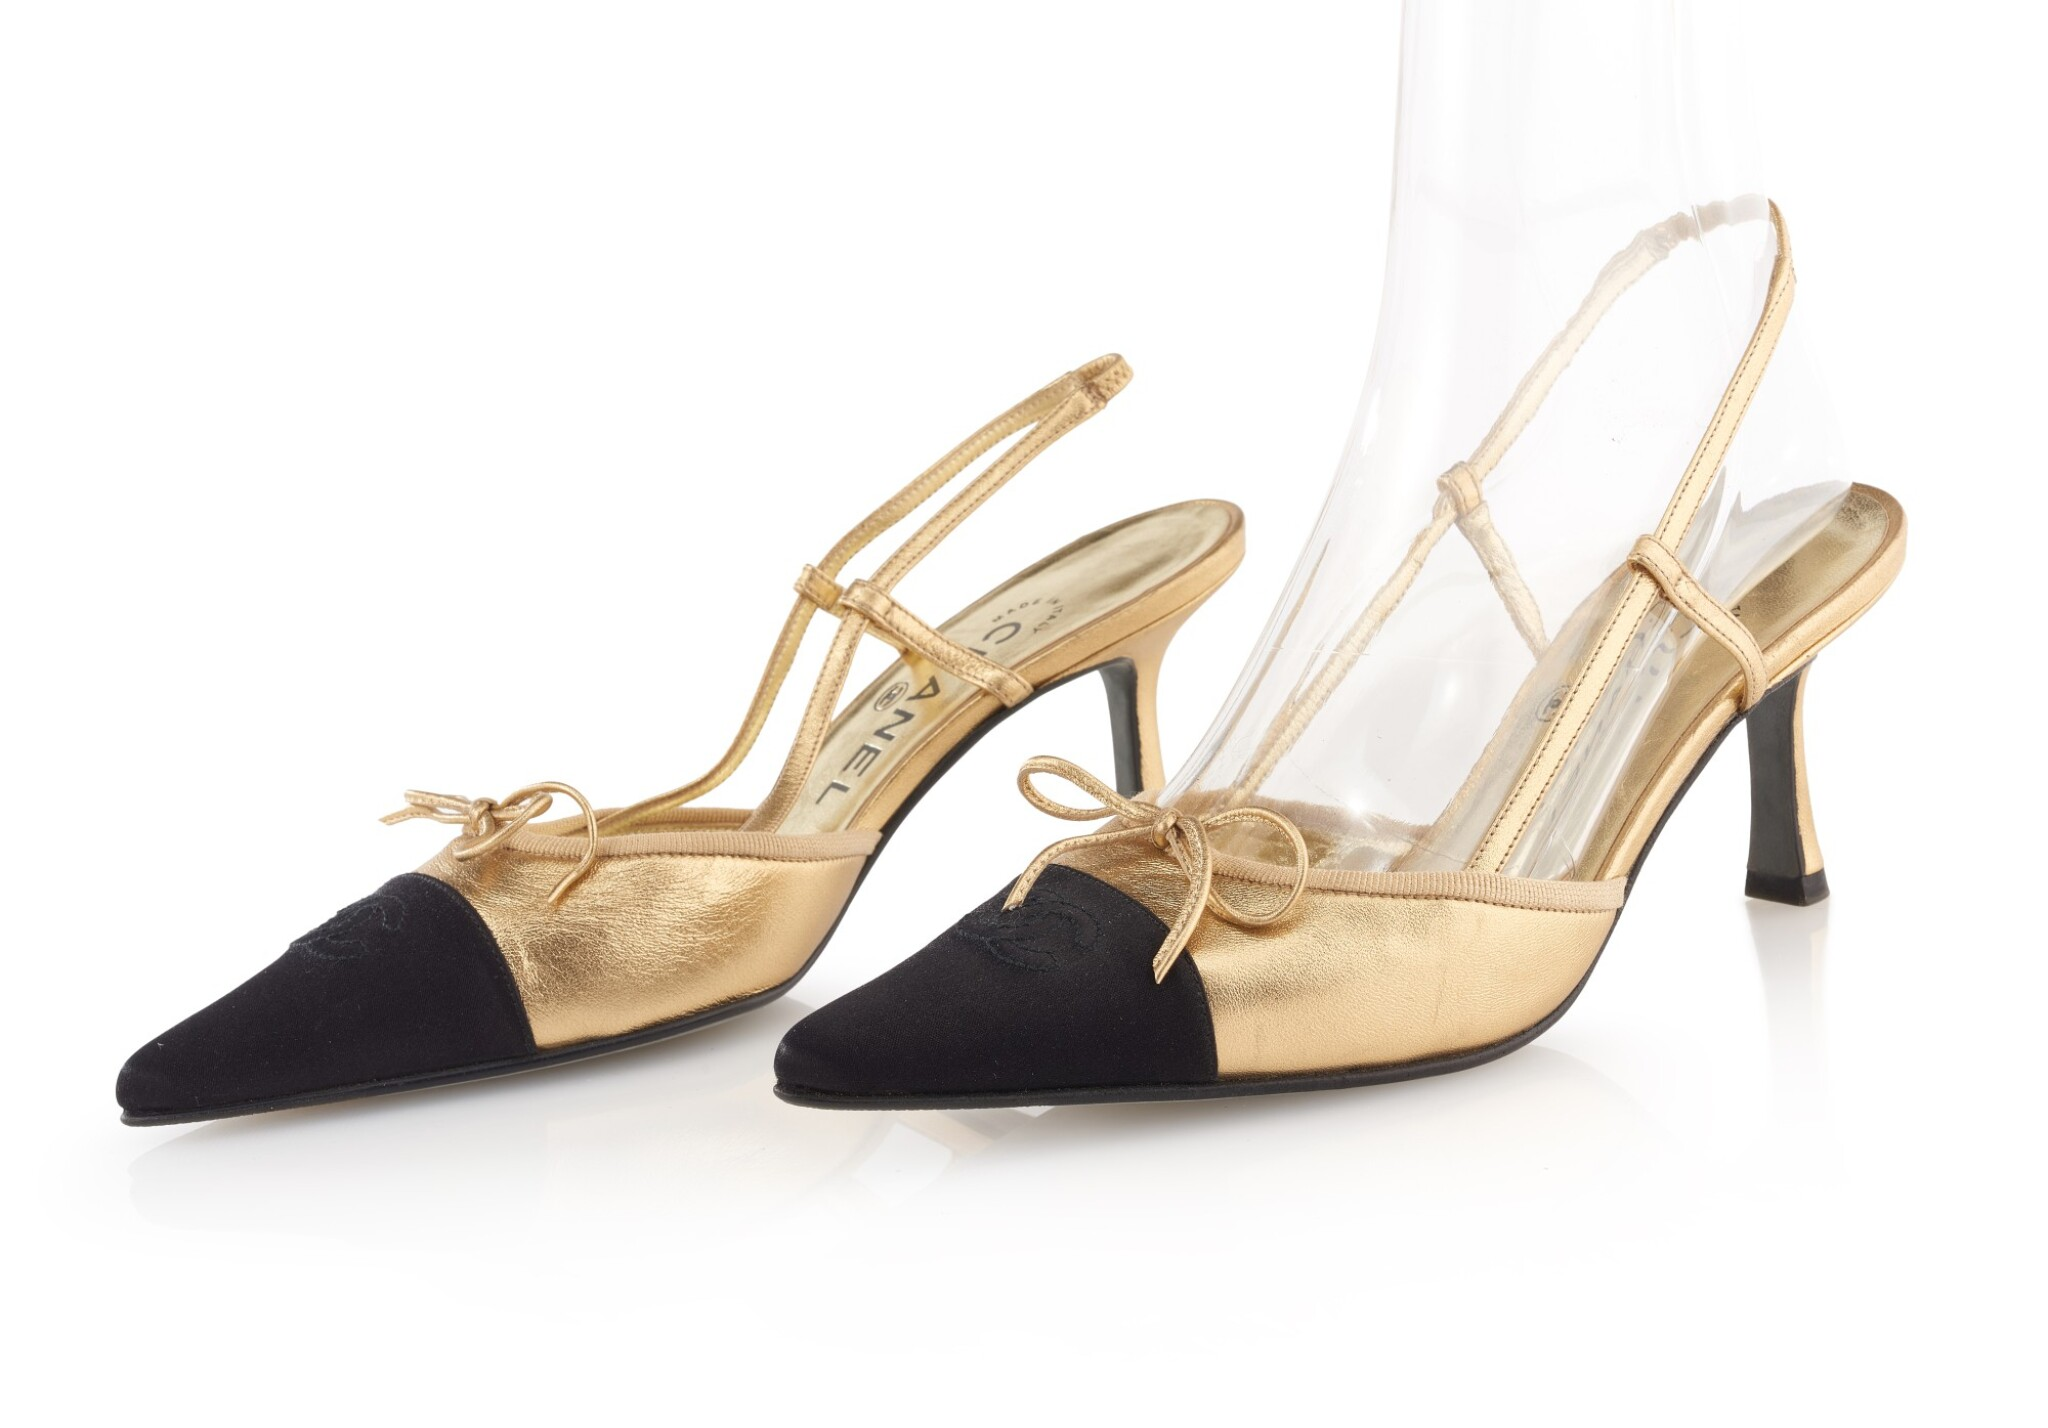 PAIR OF GOLD LEATHER AND BLACK CAP TOE SLINGBACK HEELS, CHANEL